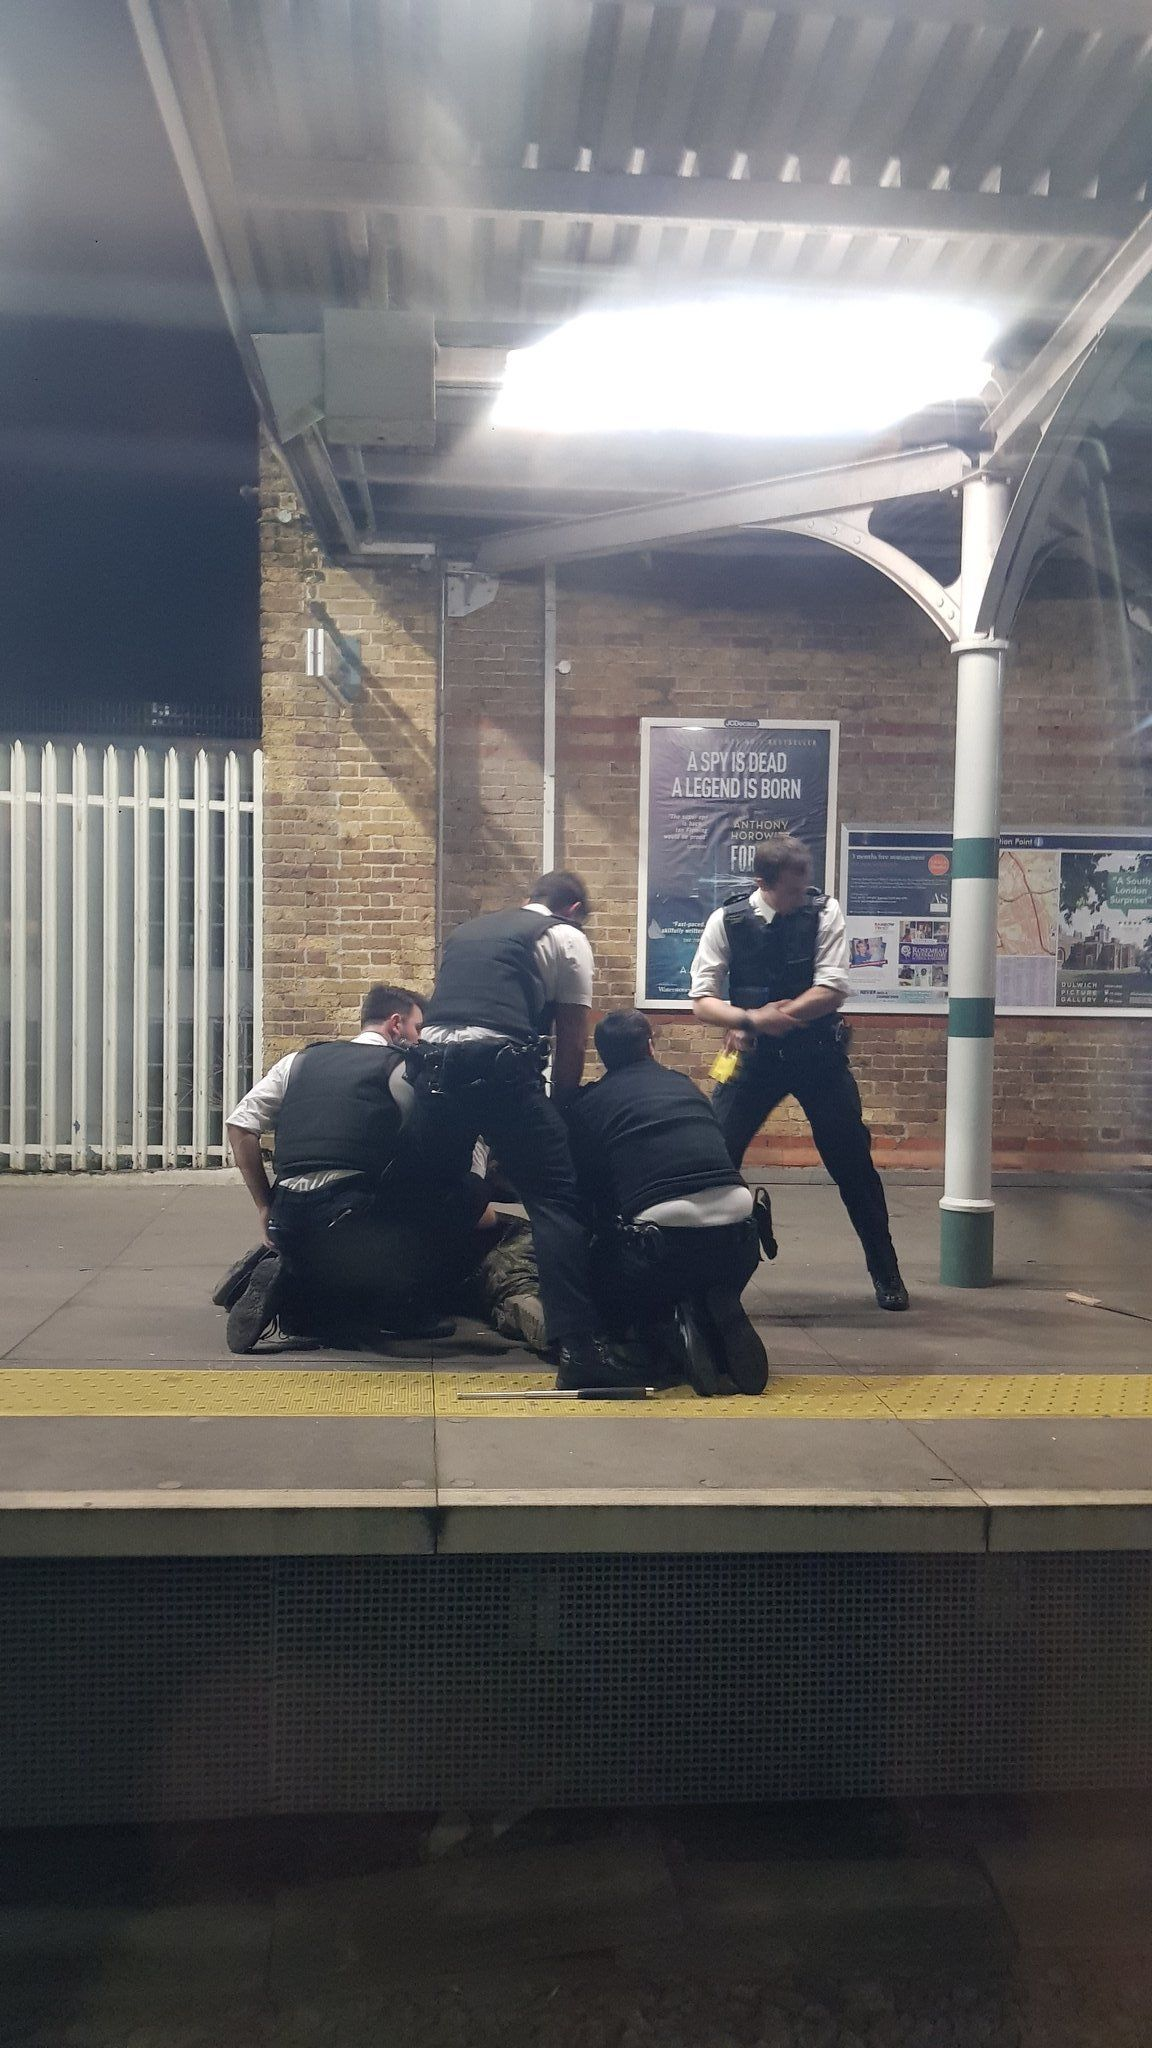 Man Arrested On Suspicion Of Attempted Murder At South London Train